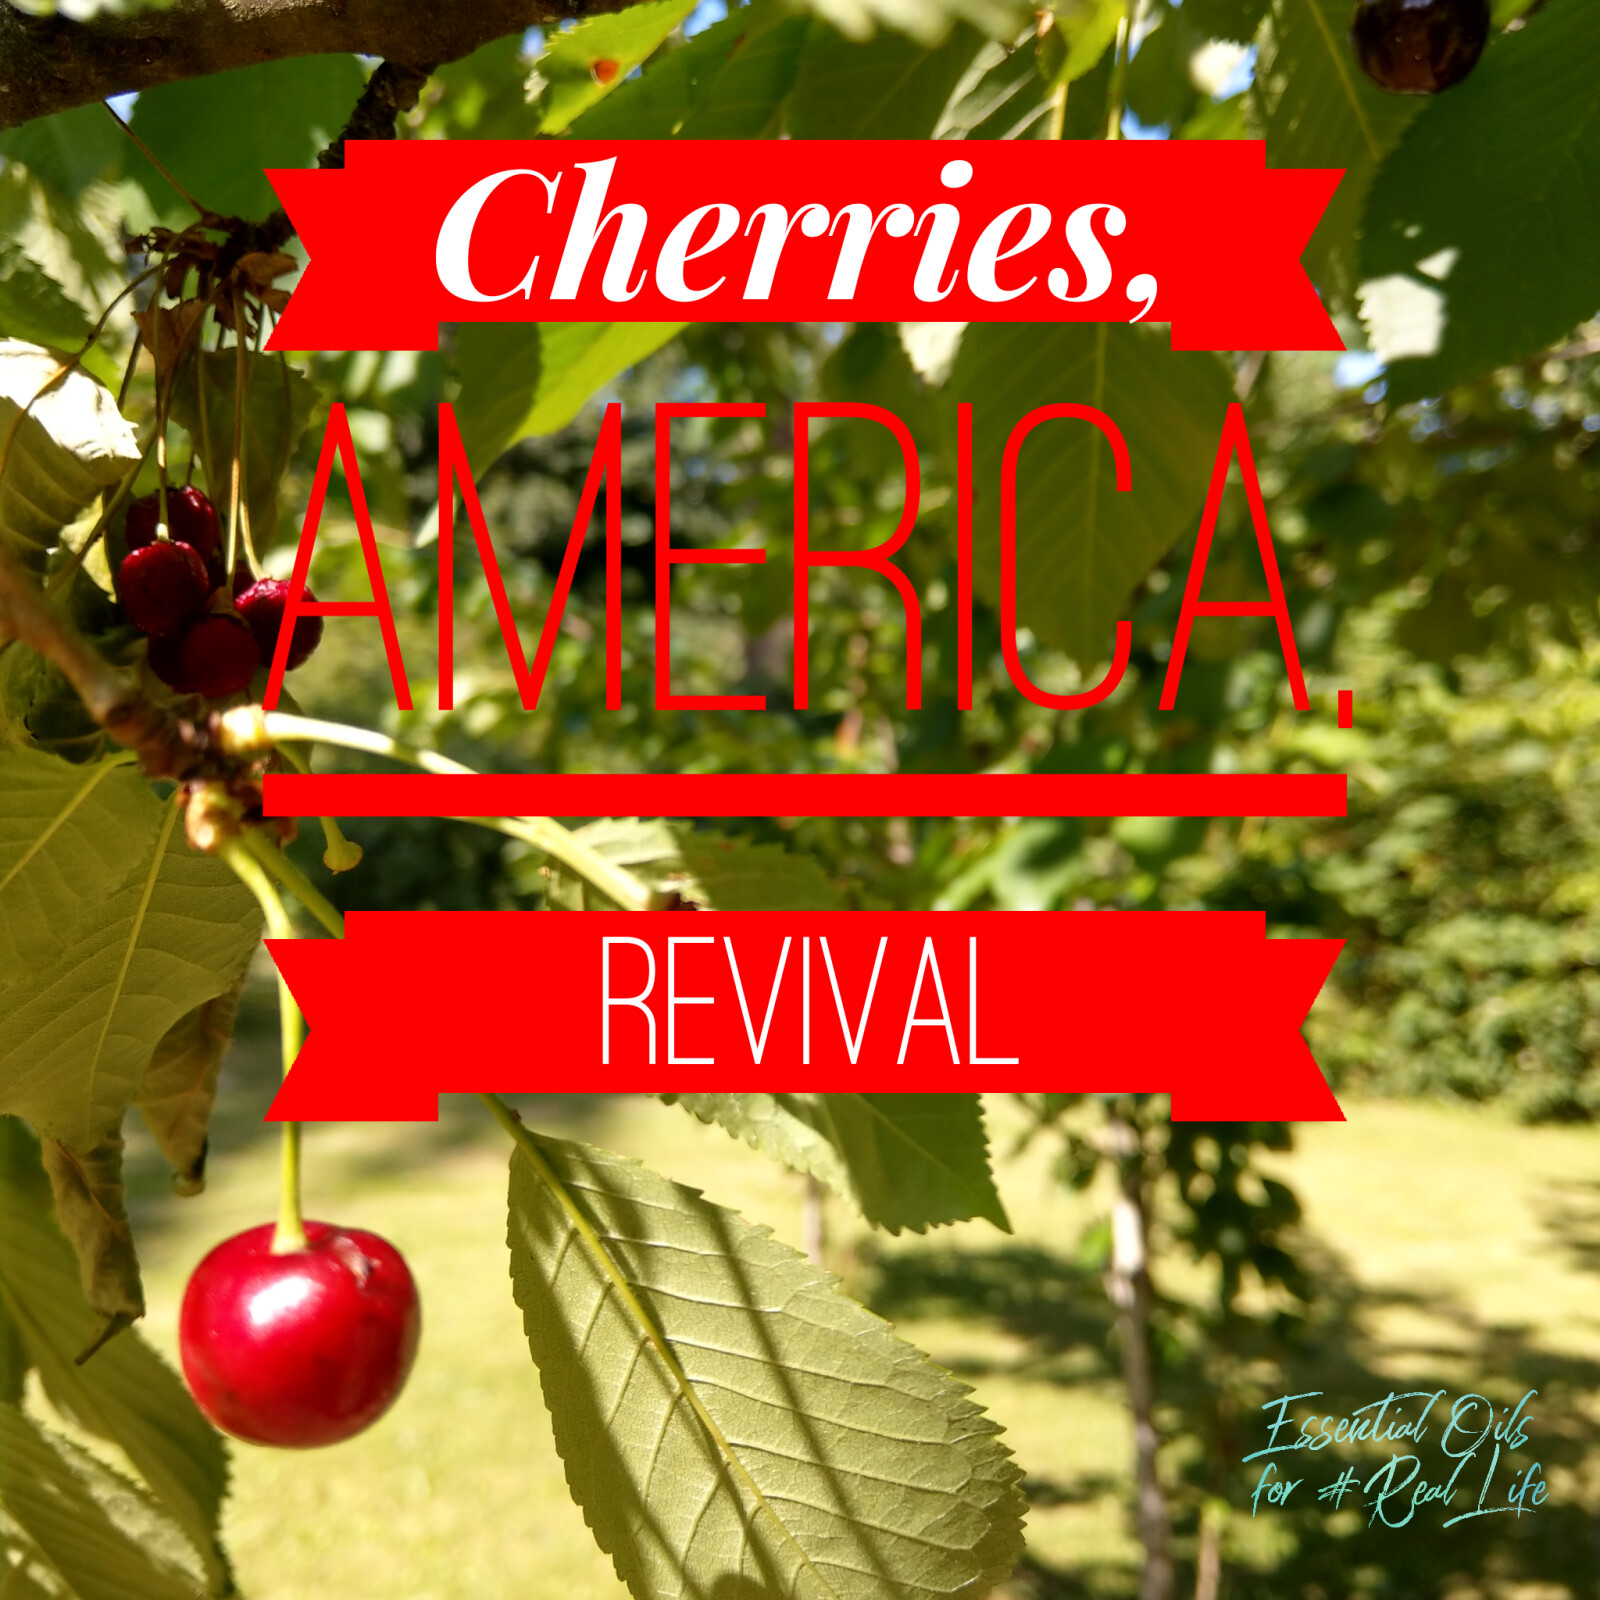 Cherries, America, Revival